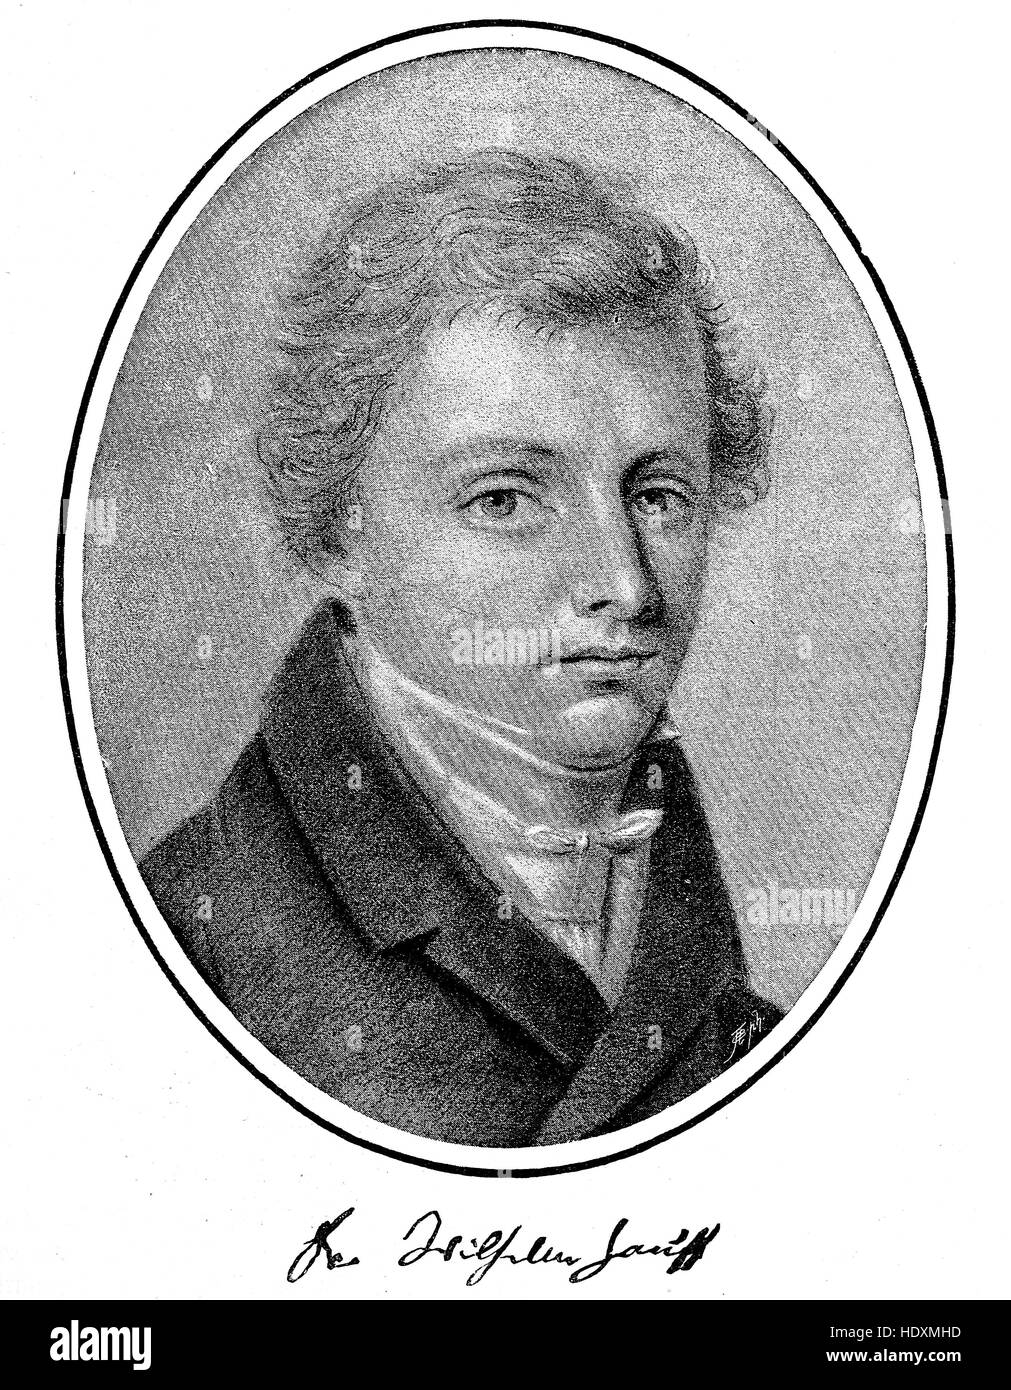 Wilhelm Hauff, 1802-1827, a German poet and novelist, woodcut from the year 1882, digital improved - Stock Image